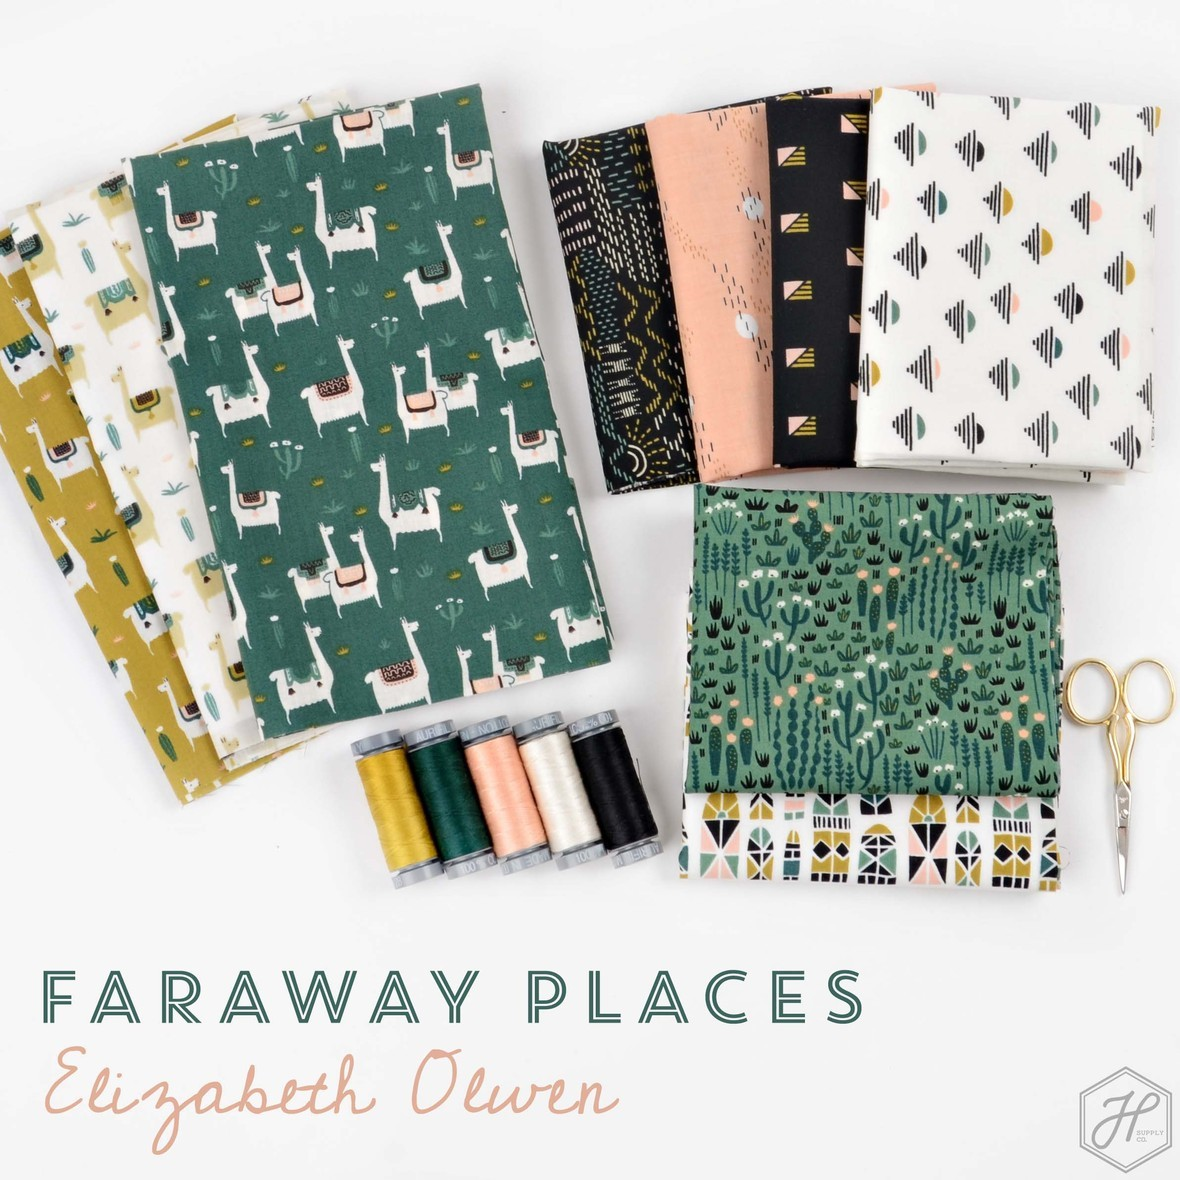 Faraway Places Fabric Poster Elizabeth Olwen at Hawthorne Supply Co